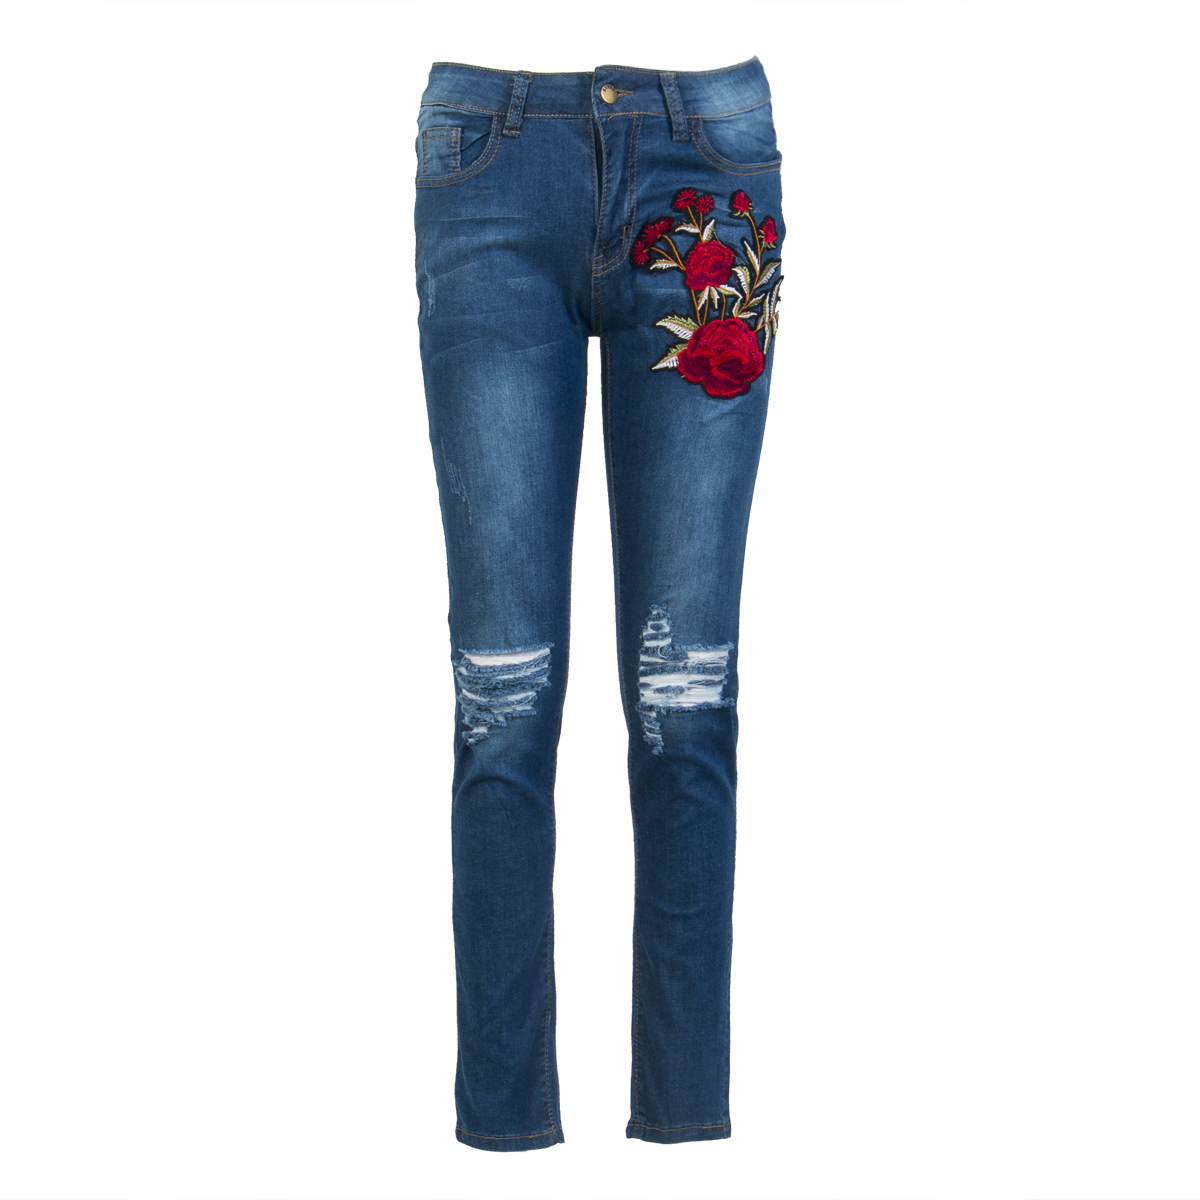 купить Plus Size Women Denim Skinny Pants High Waist Hole Stretch Trousers Slim Pencil Jeans Stylish Floral Embroidery Pencil Jeans дешево